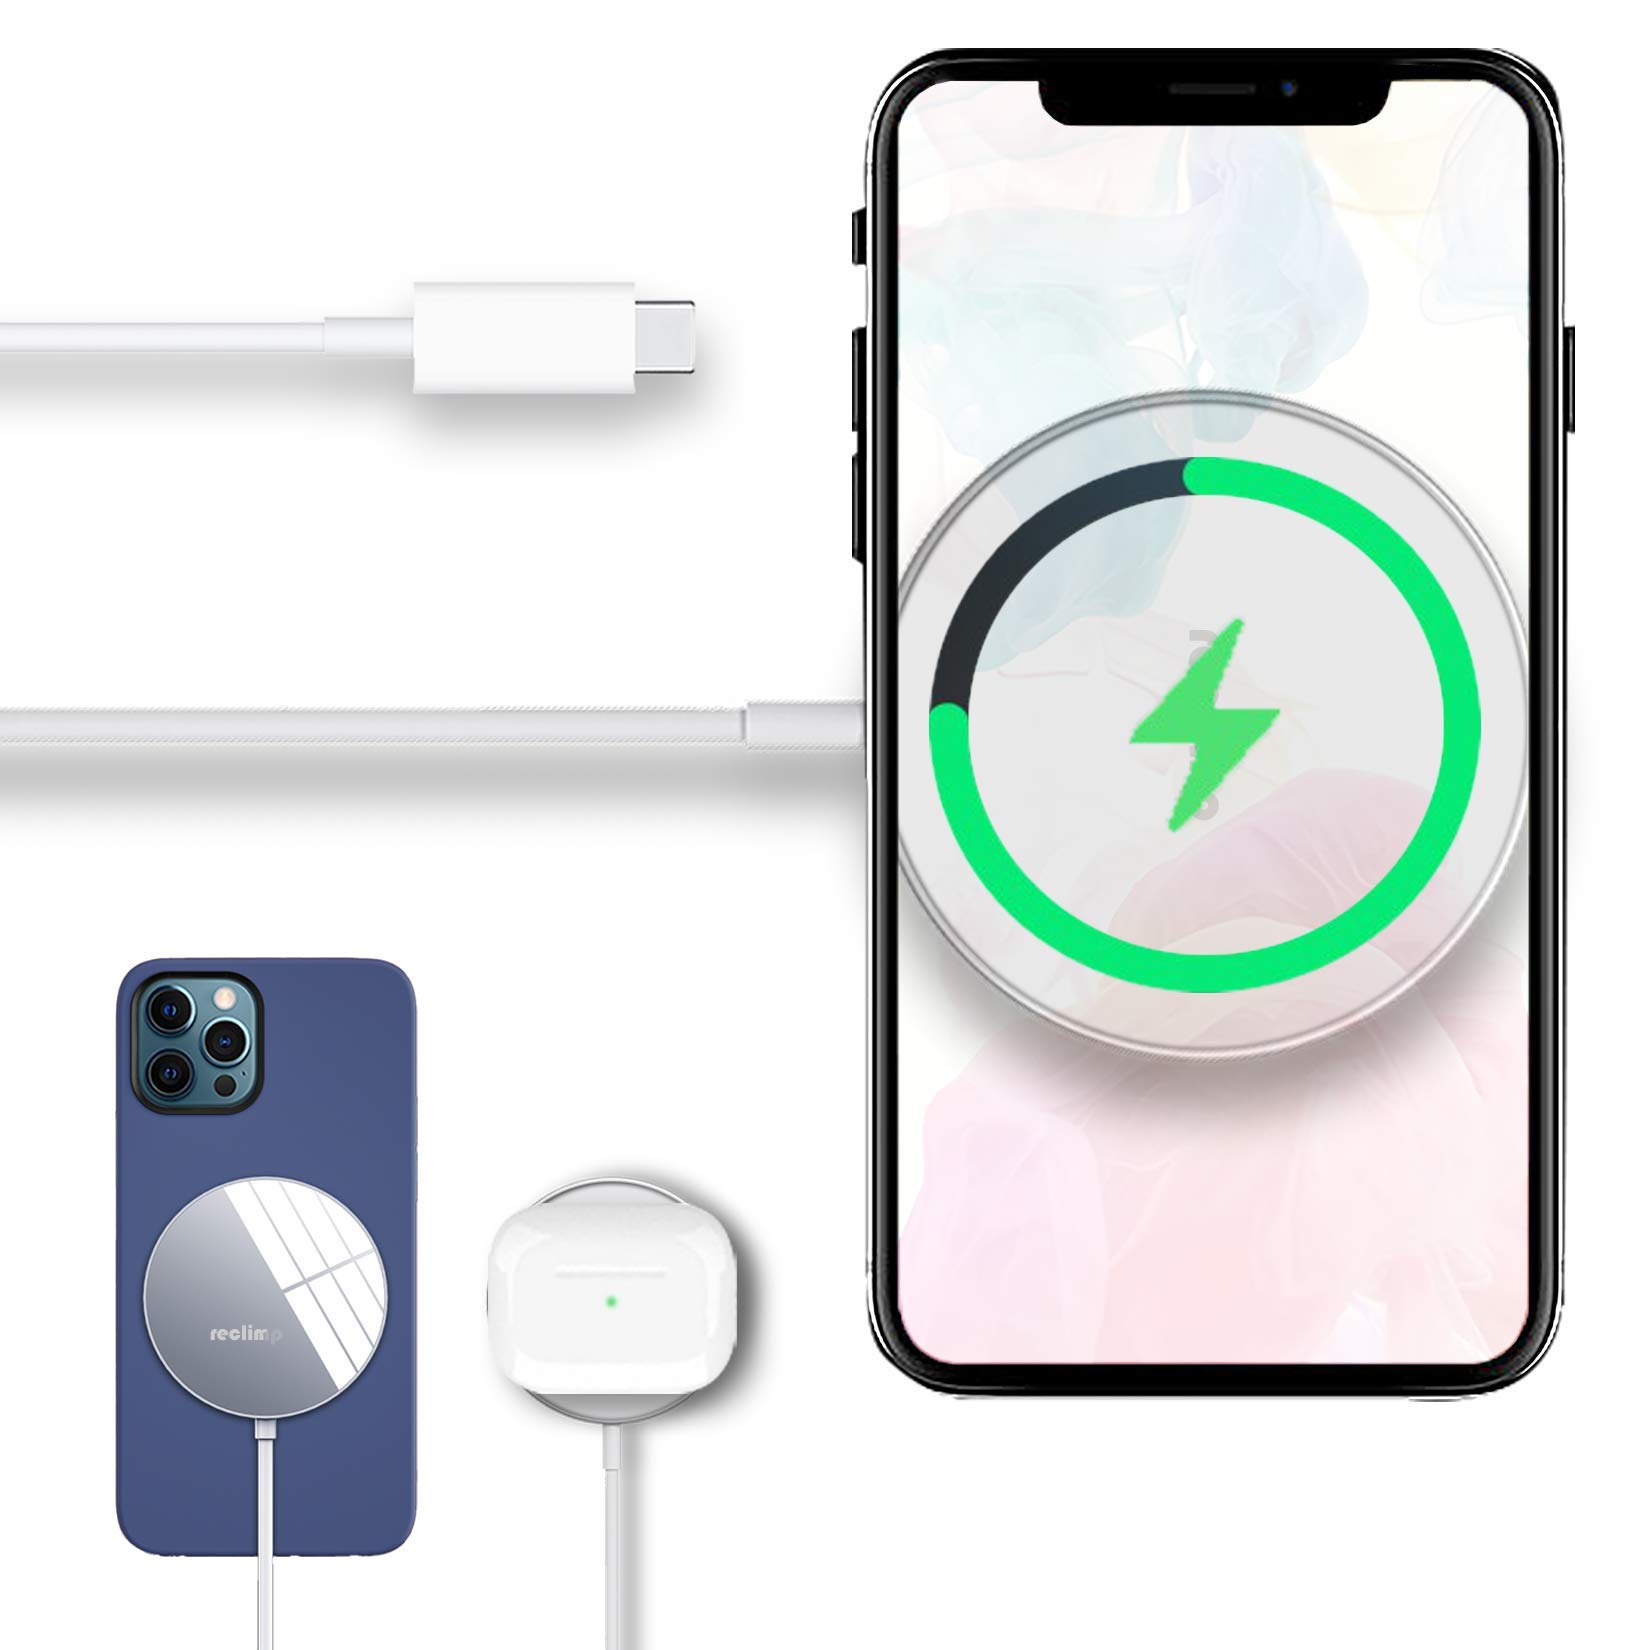 Reclimp 15W Magnetic Wireless Charger Compatible with iPhone 12/12Mini/12 Pro/12 Pro Max, Auto-Attraction Fast Wireless Charging Pad for iPhone 12/12 Mini/12 Pro/12 Pro Max (Compatible for Mag-Safe)